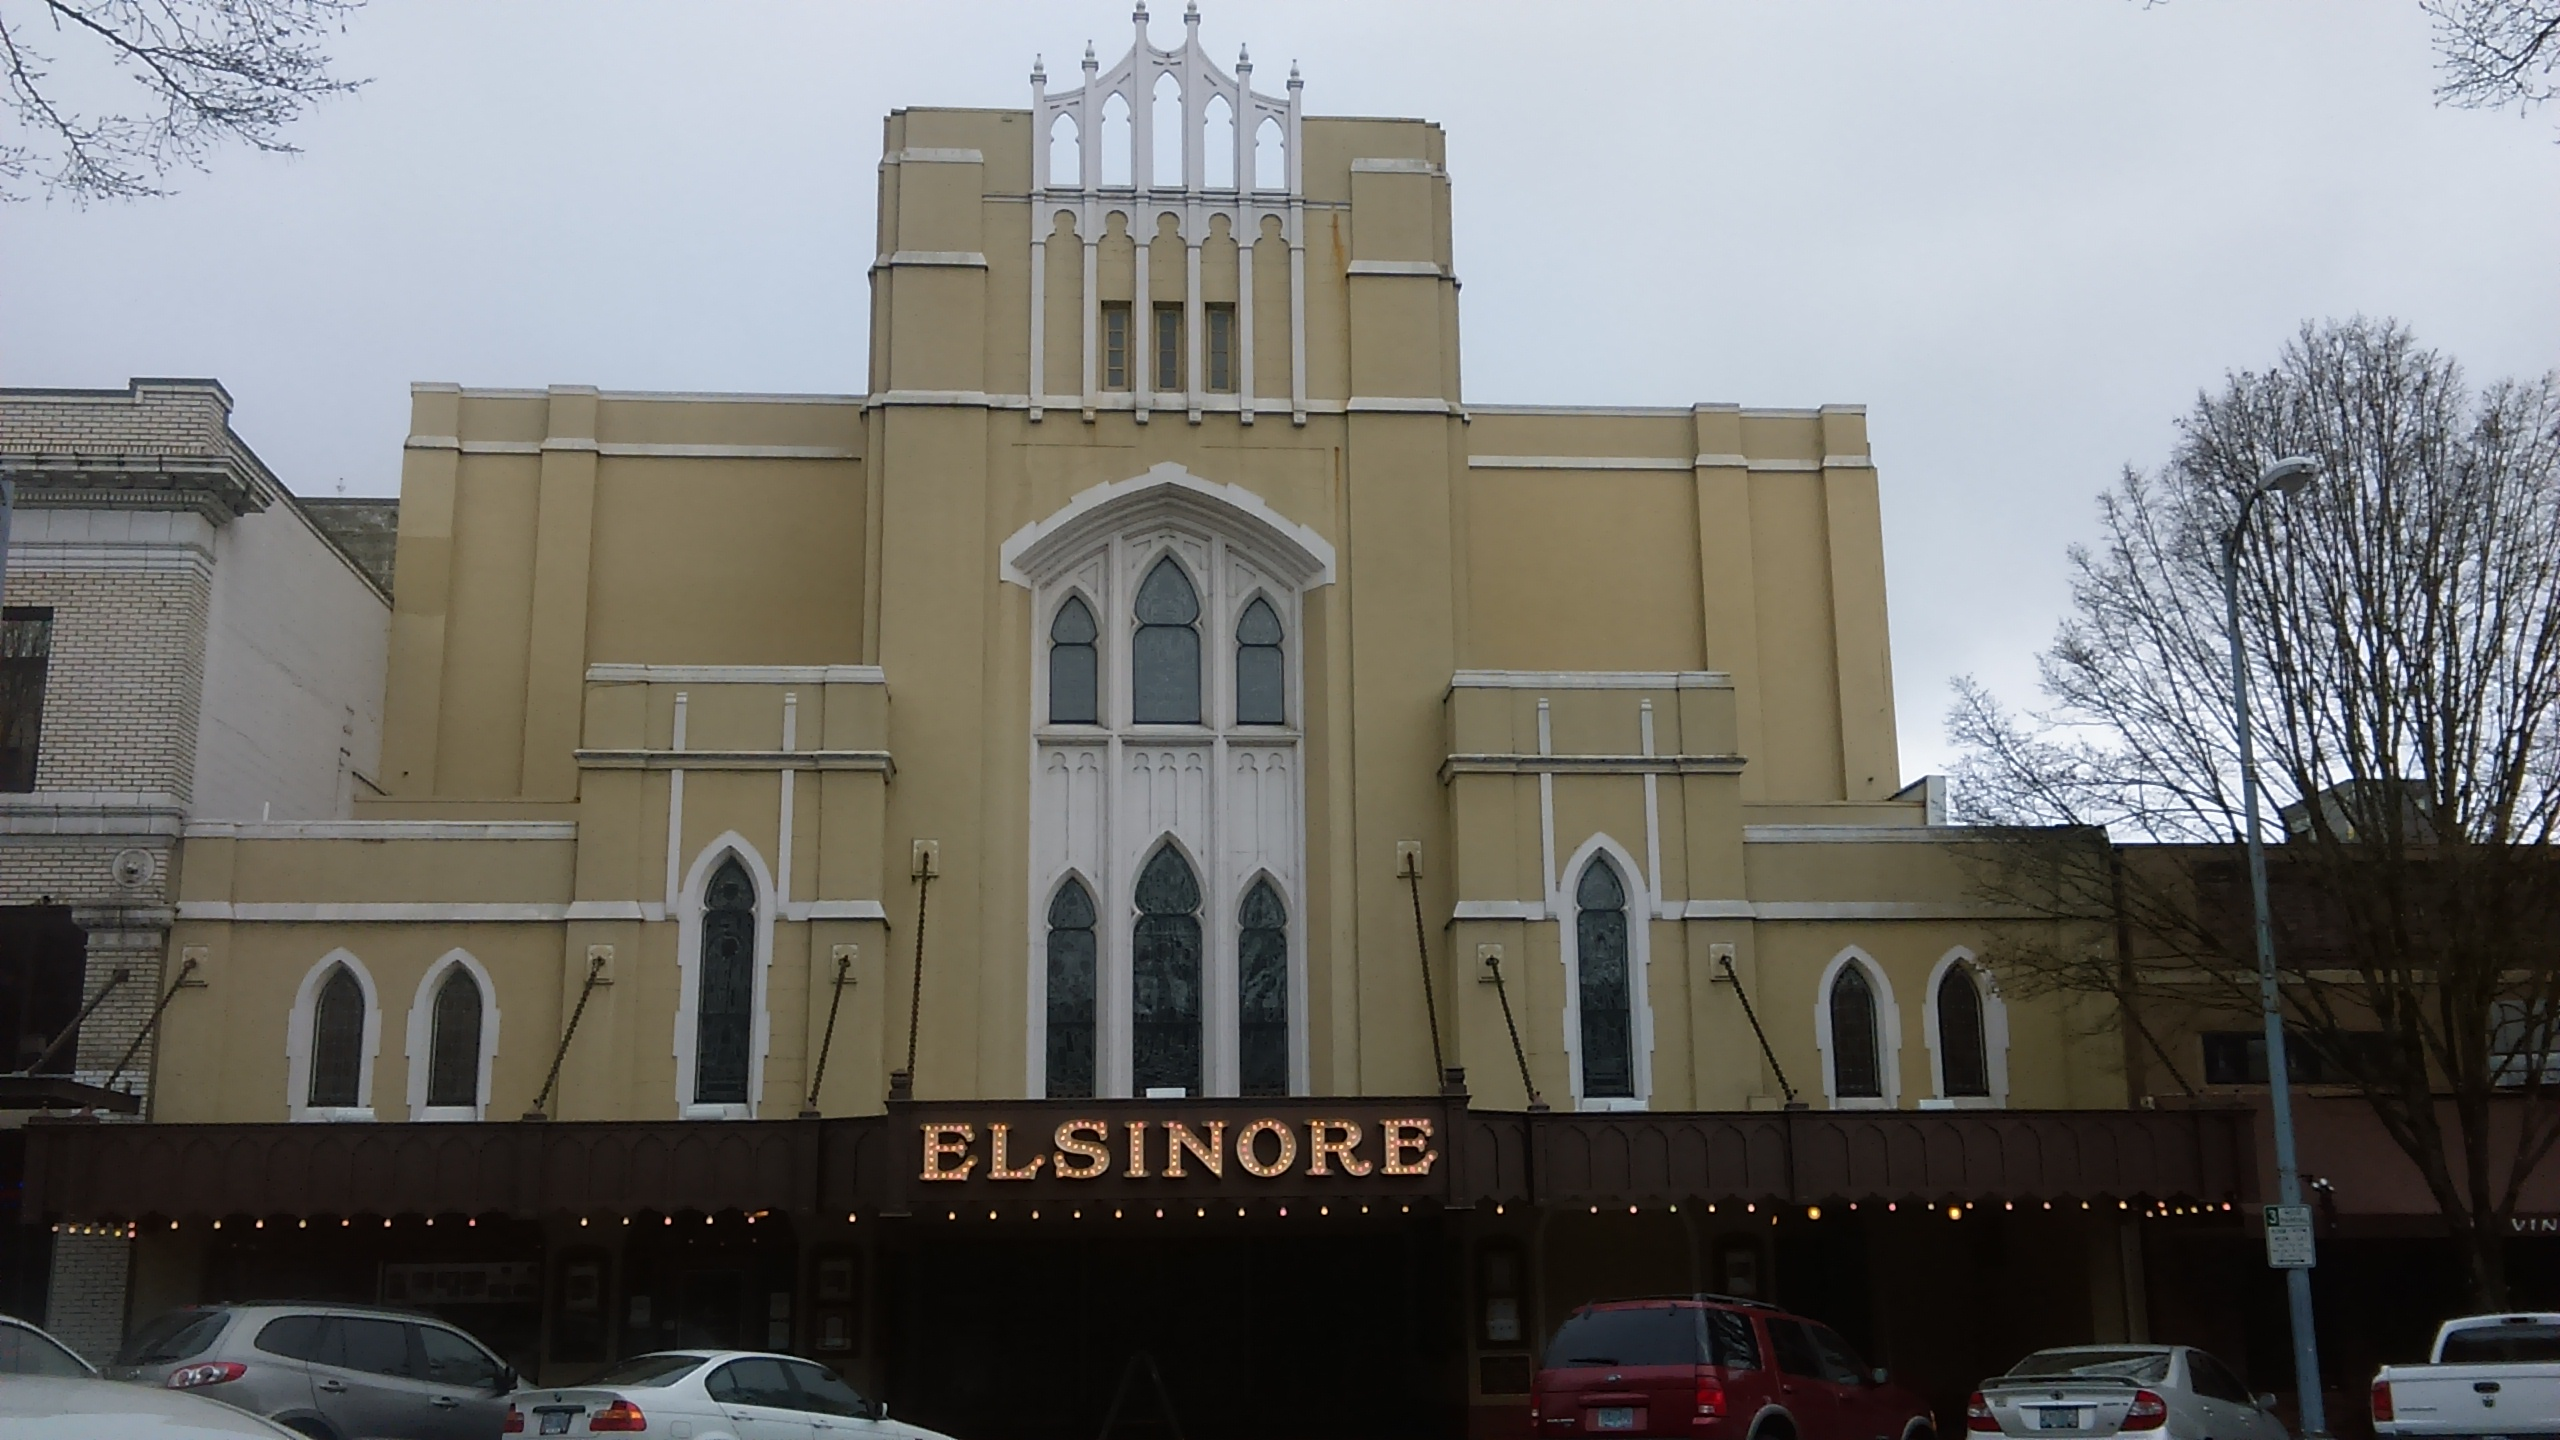 Elsinore theater, on high street in downtown Salem.